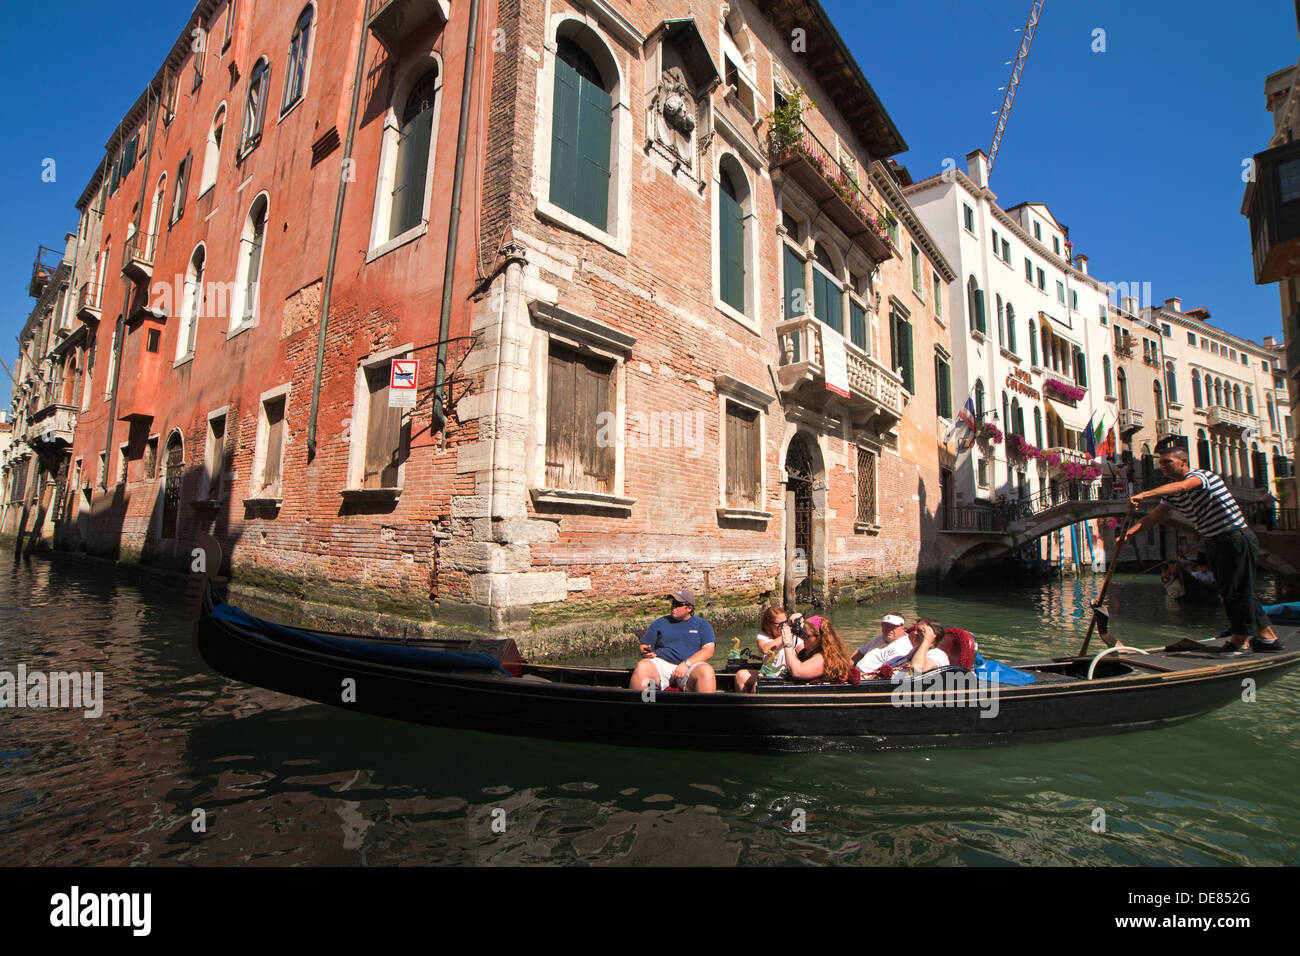 gondola with tourists in Venice, Italy - Stock Image